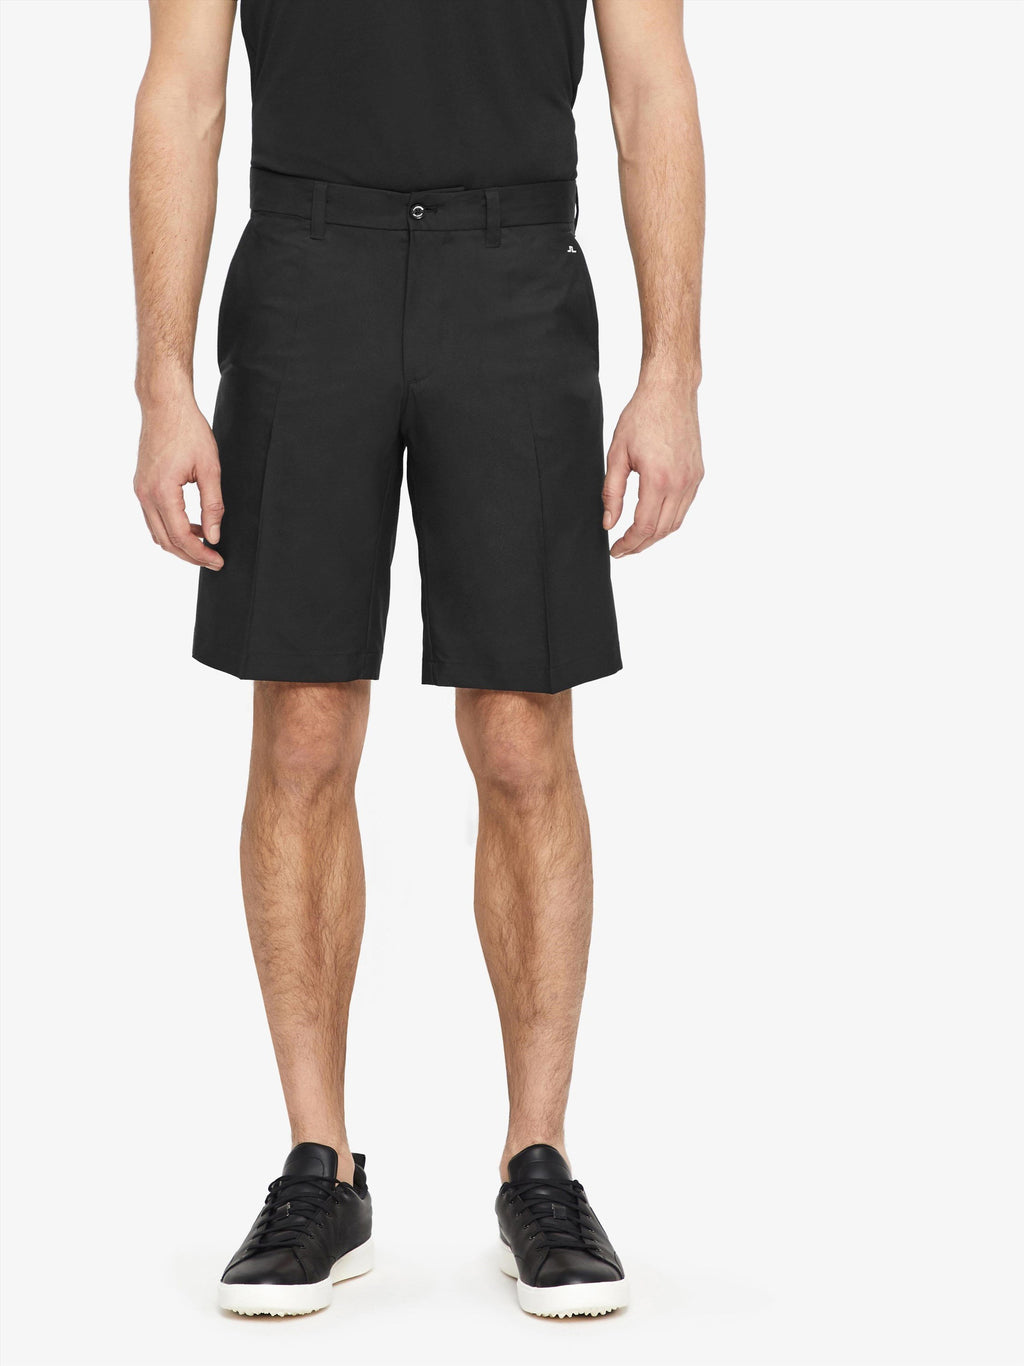 J LINDEBERG SOMLE LIGHT POLY MEN'S GOLF SHORTS - Miami Golf